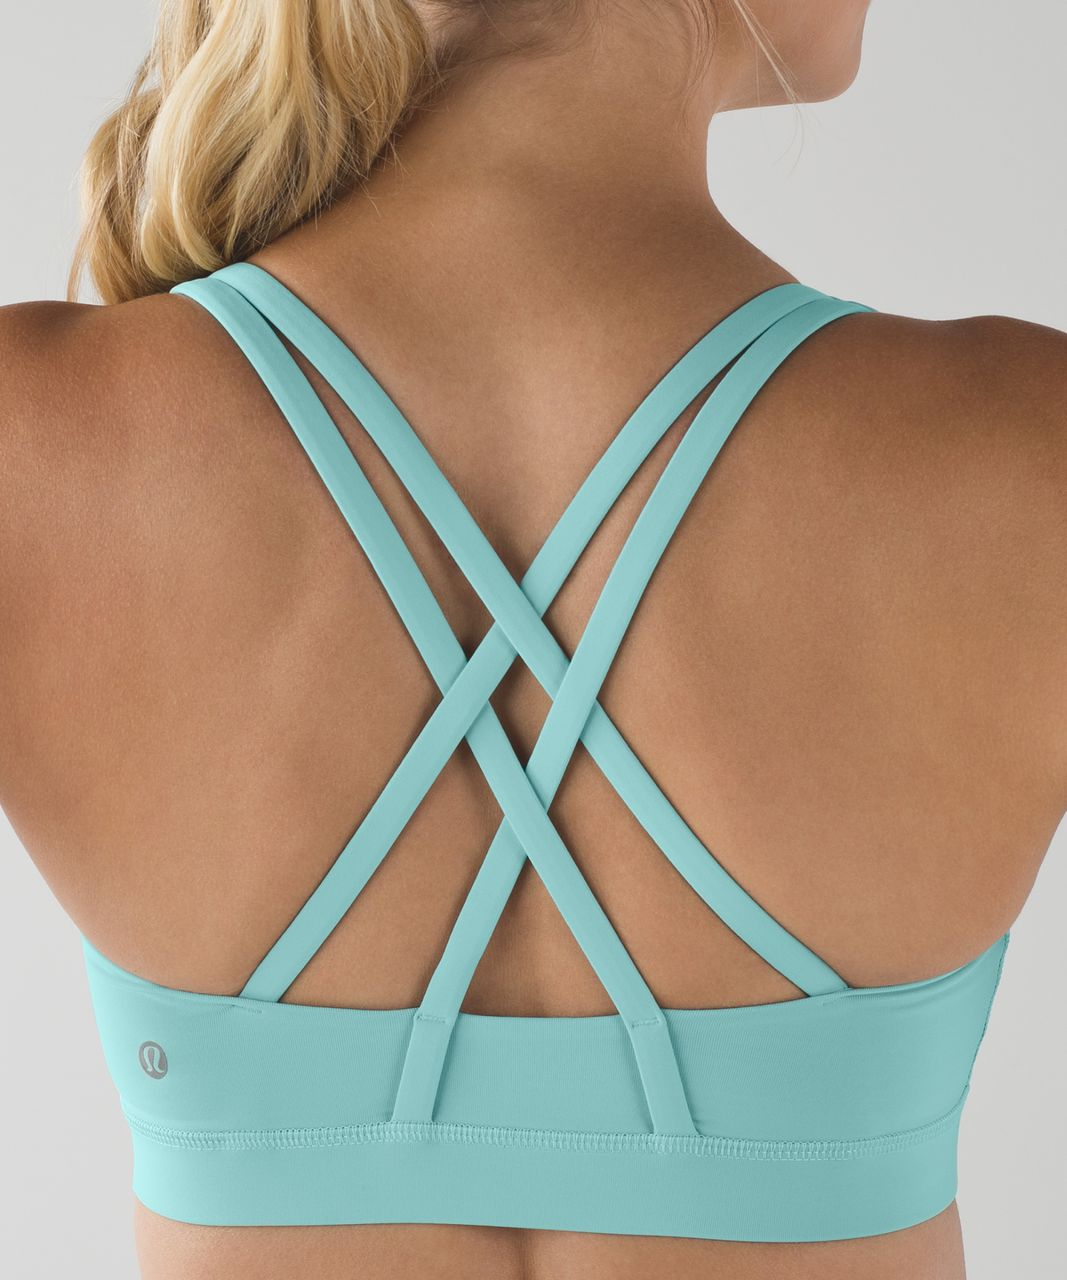 Lululemon Energy Bra - Tonic Sea